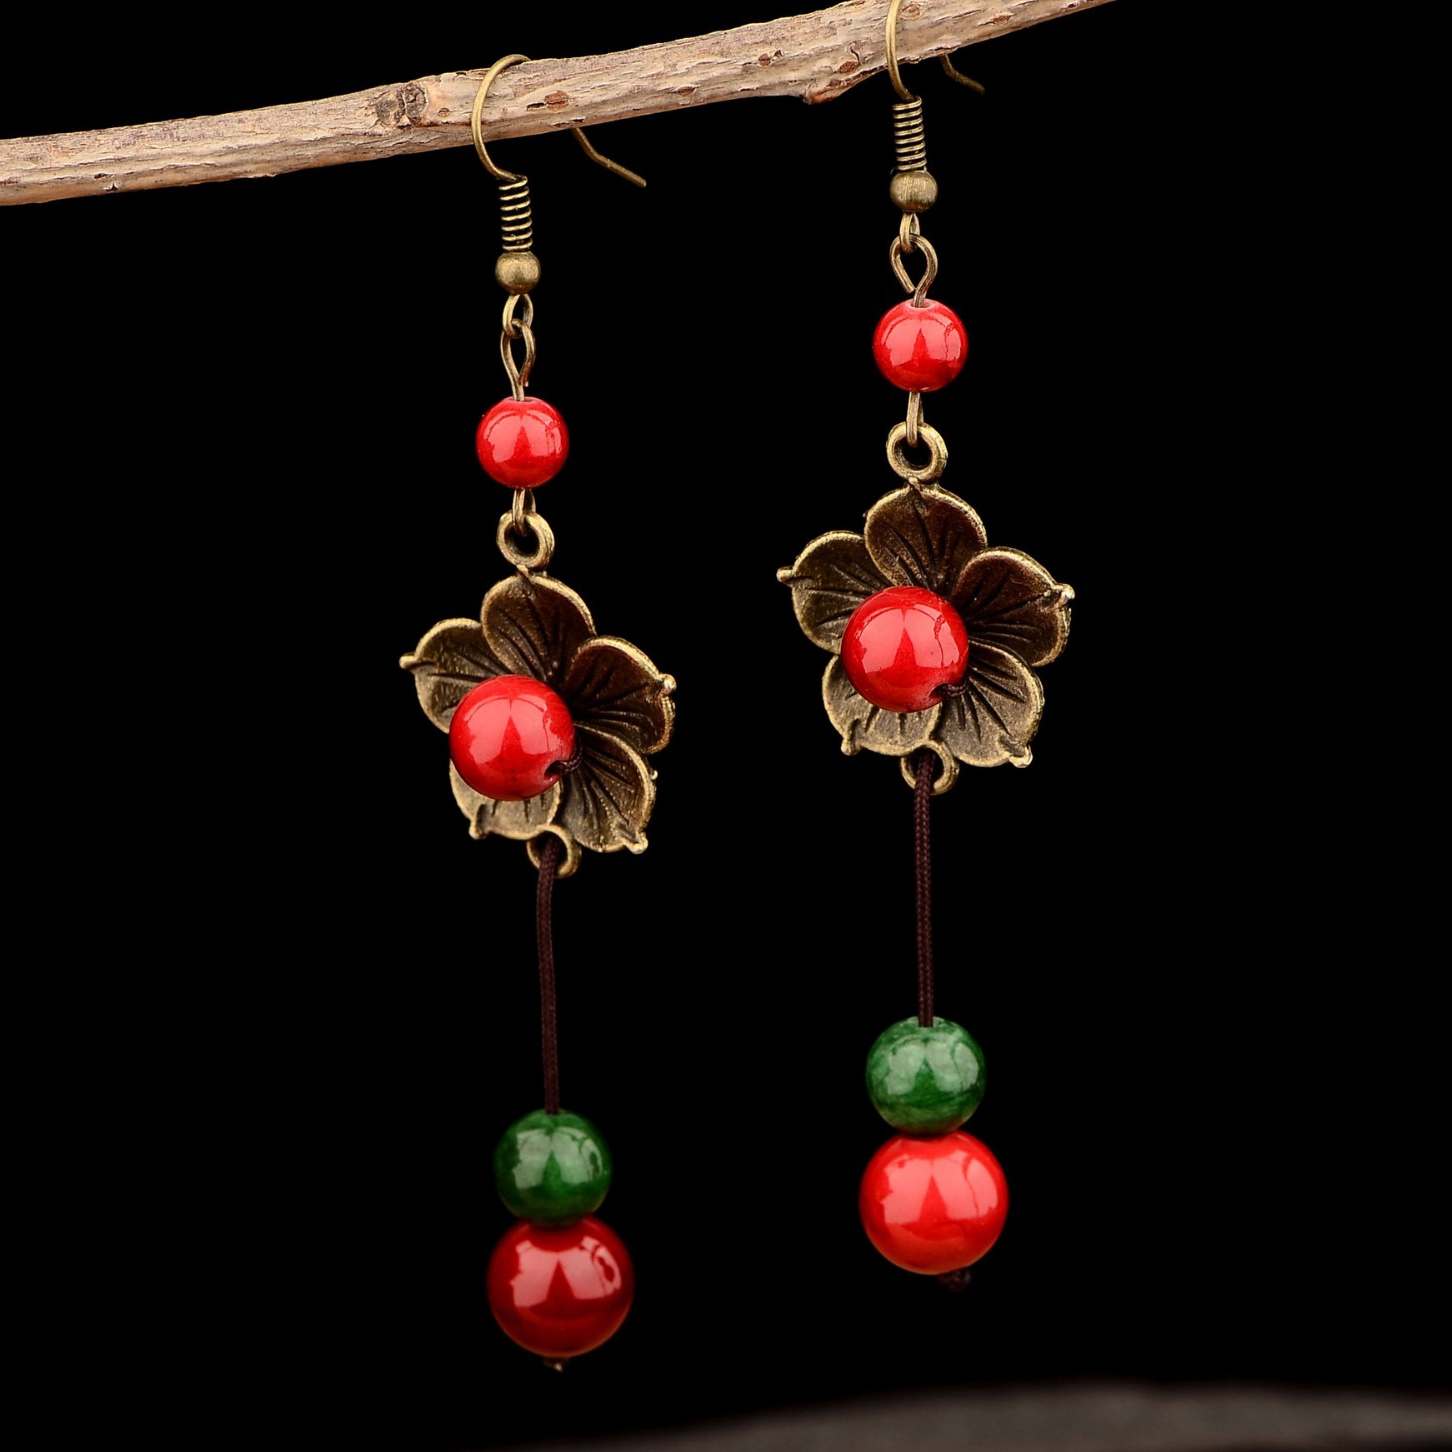 Ethnic Flower Turquoise Beads Tassel Drop Earrings Jewelry